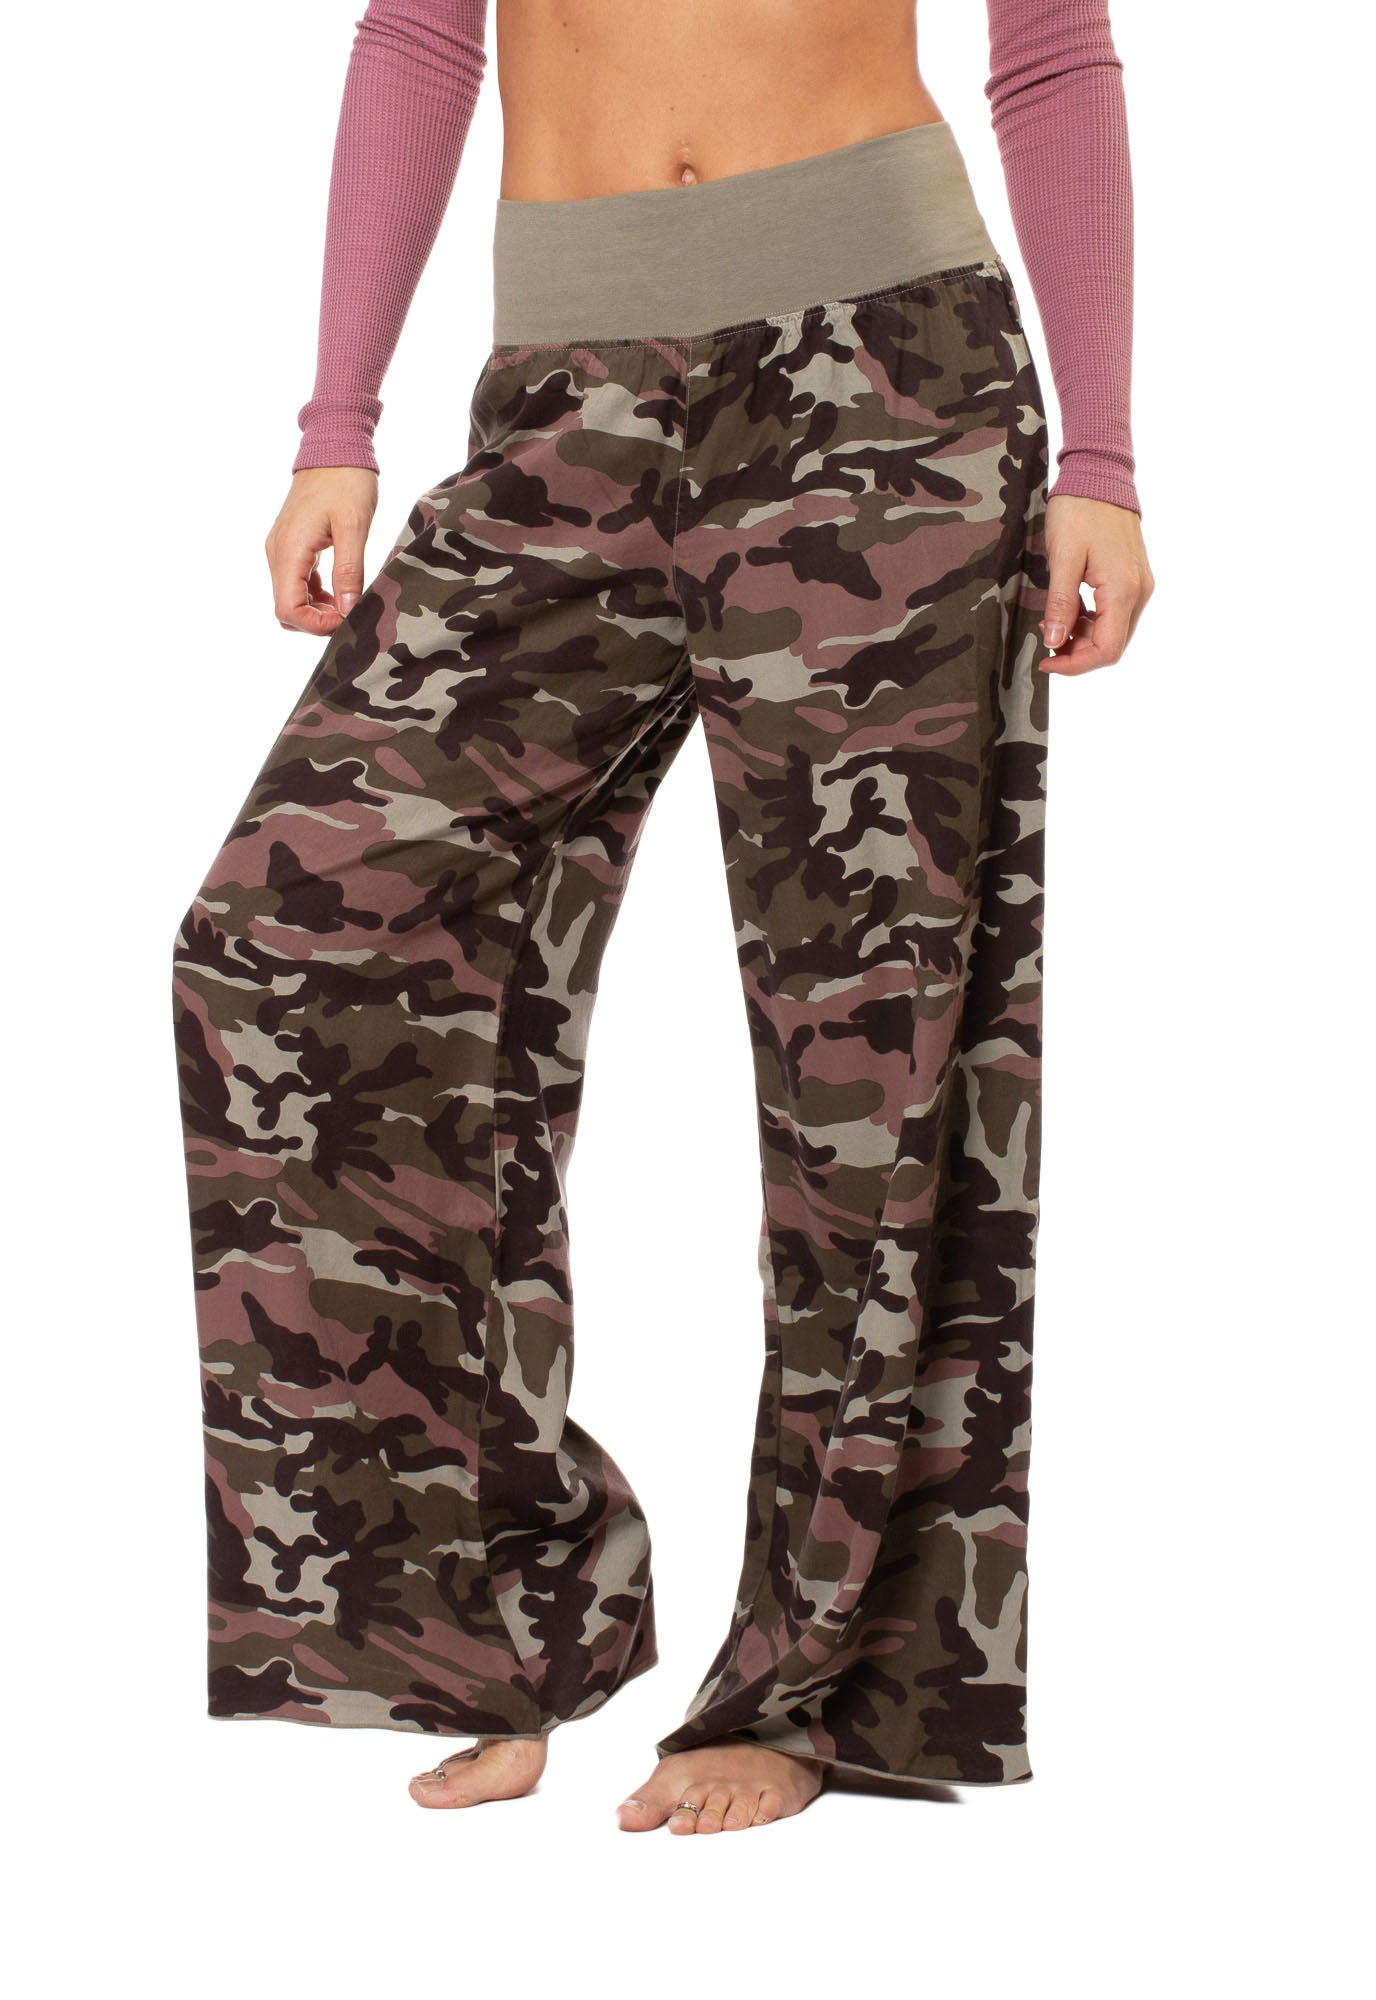 Hard Tail Forever - Full Leg Camo Flat Knit Waist Pant (BURG-04, Camping Camo)